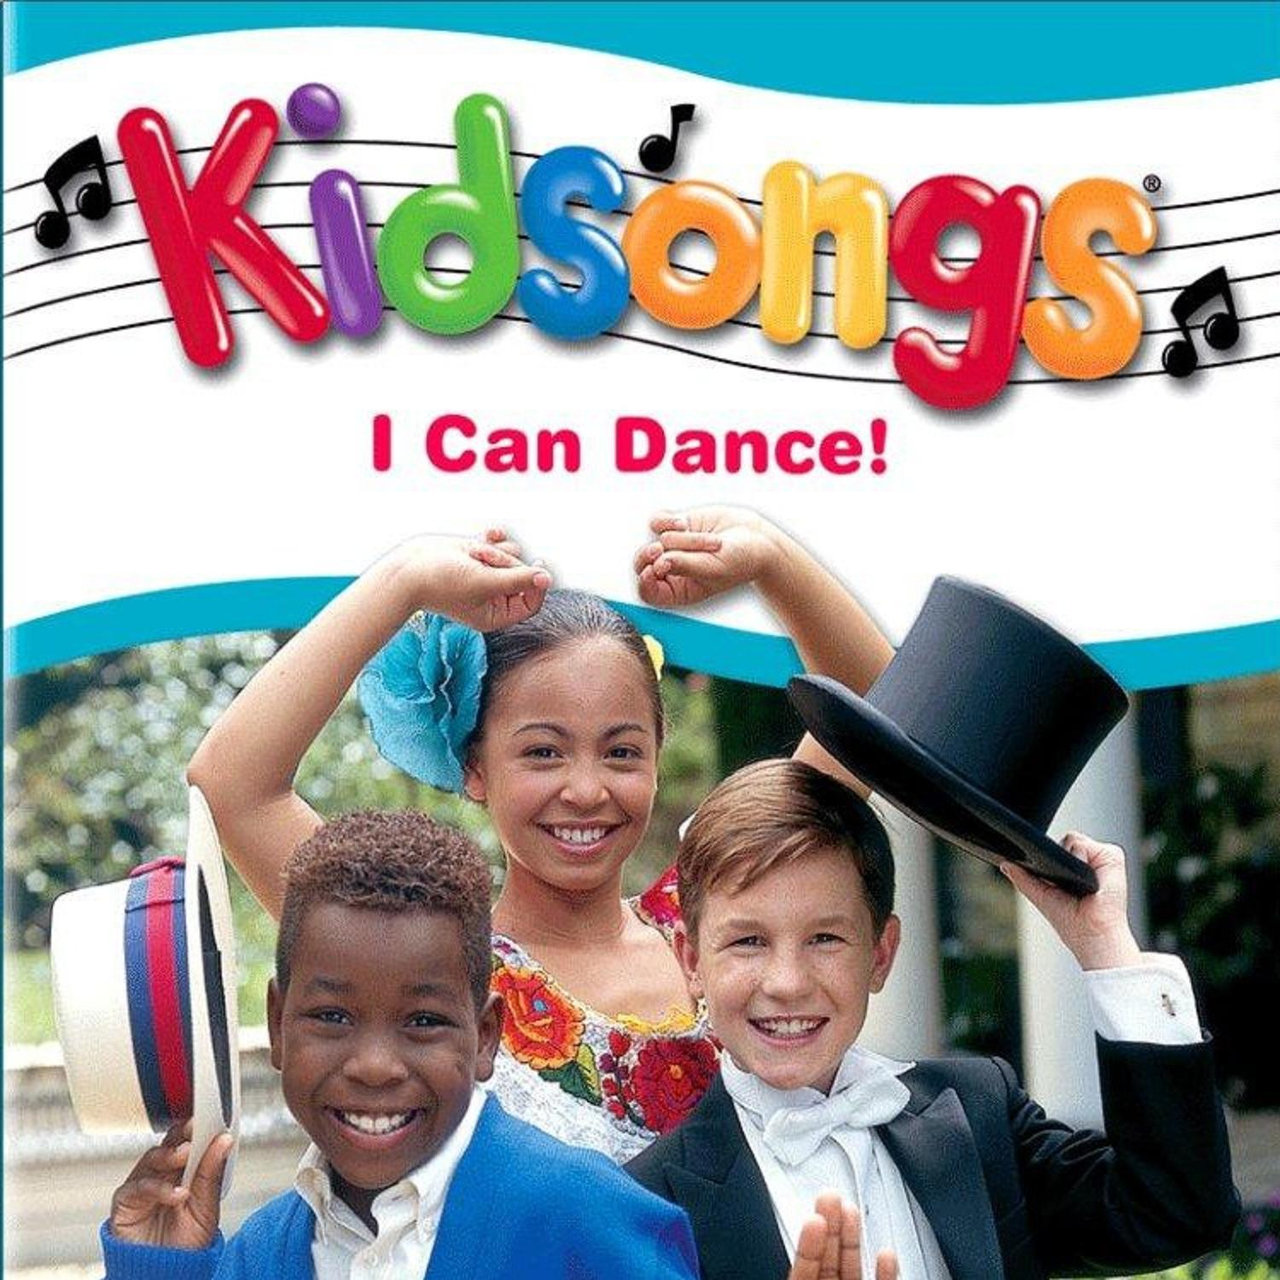 TIDAL: Listen to 30 Best Kid\'s Play Songs on TIDAL